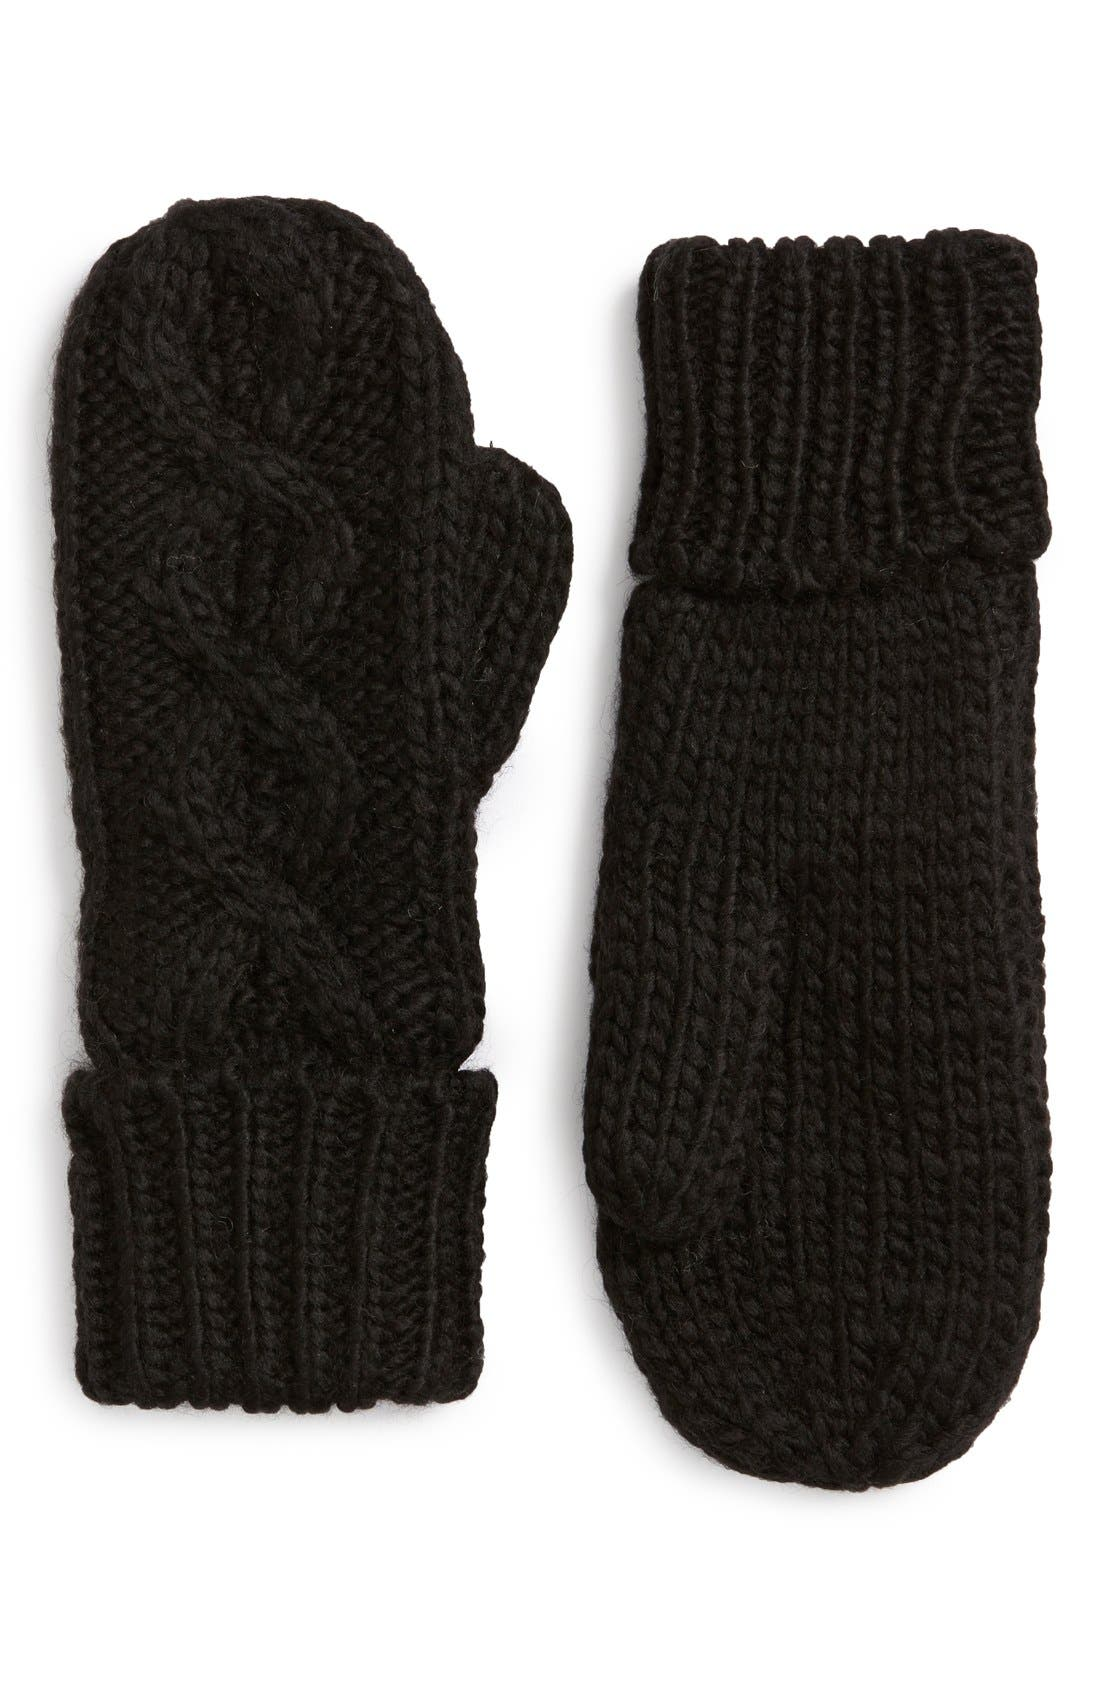 RELLA 'Betto' Cable Knit Mittens, Main, color, 001